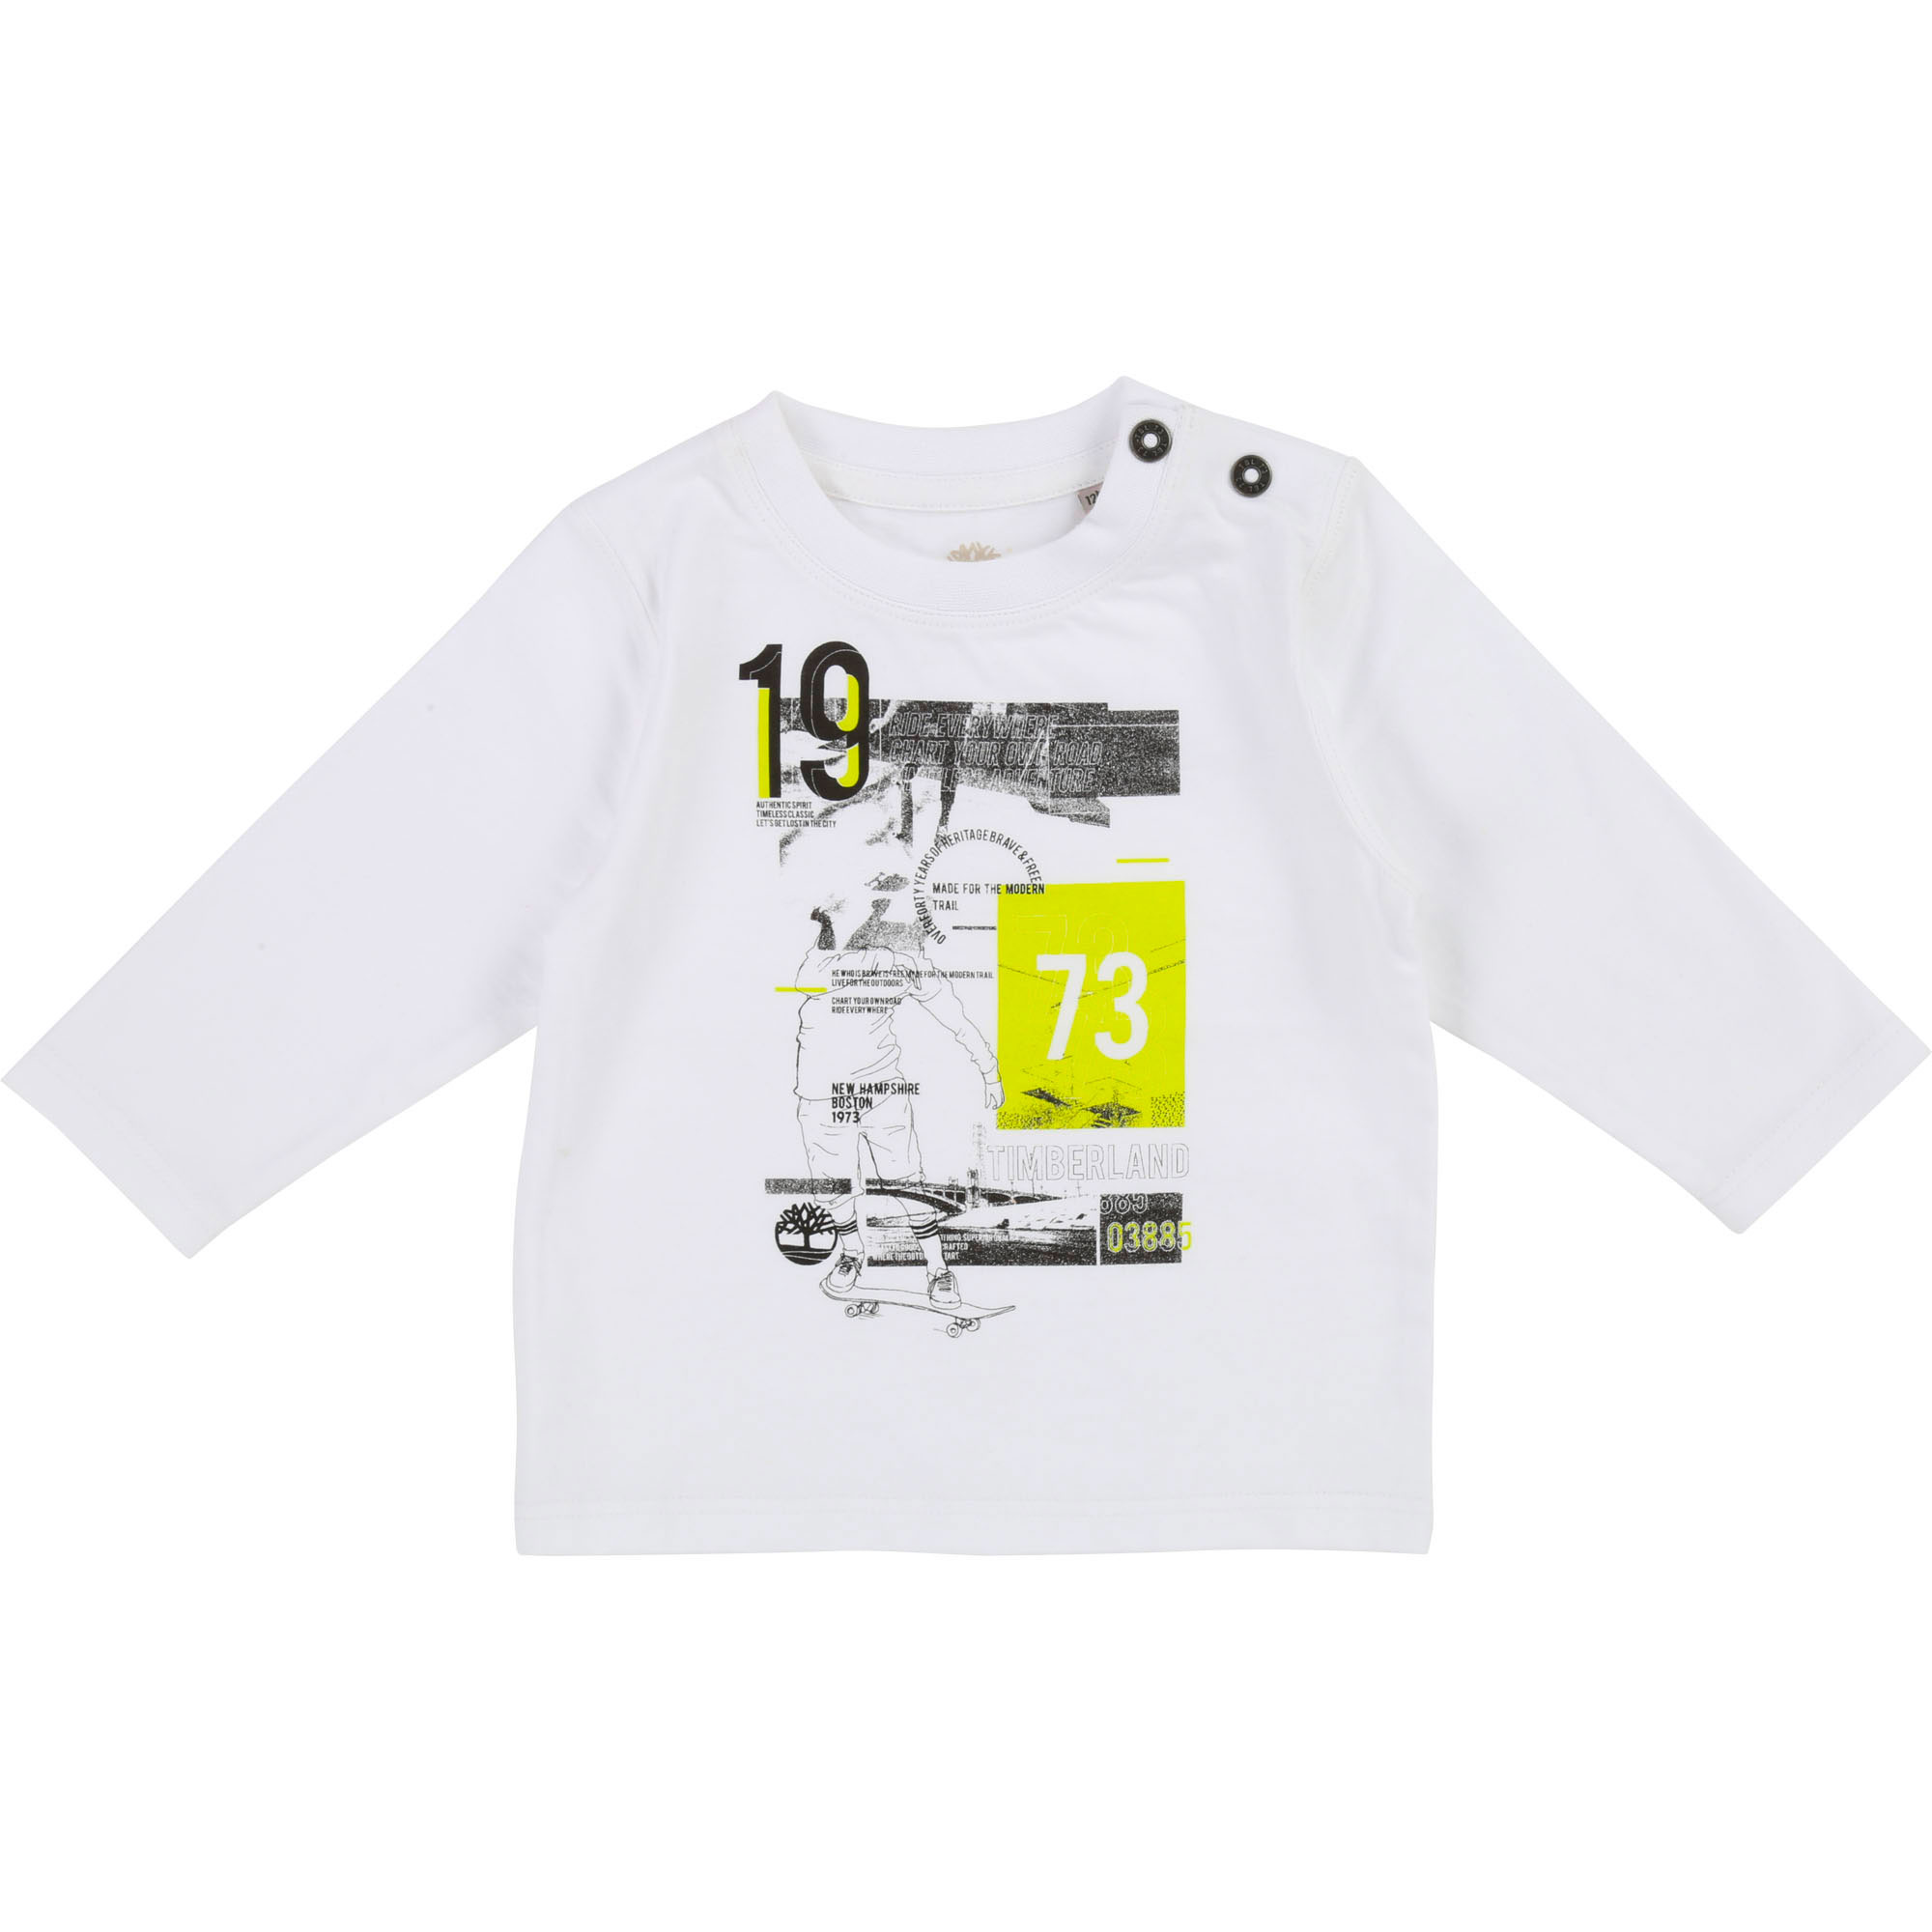 Screen-printed image T-shirt TIMBERLAND for BOY